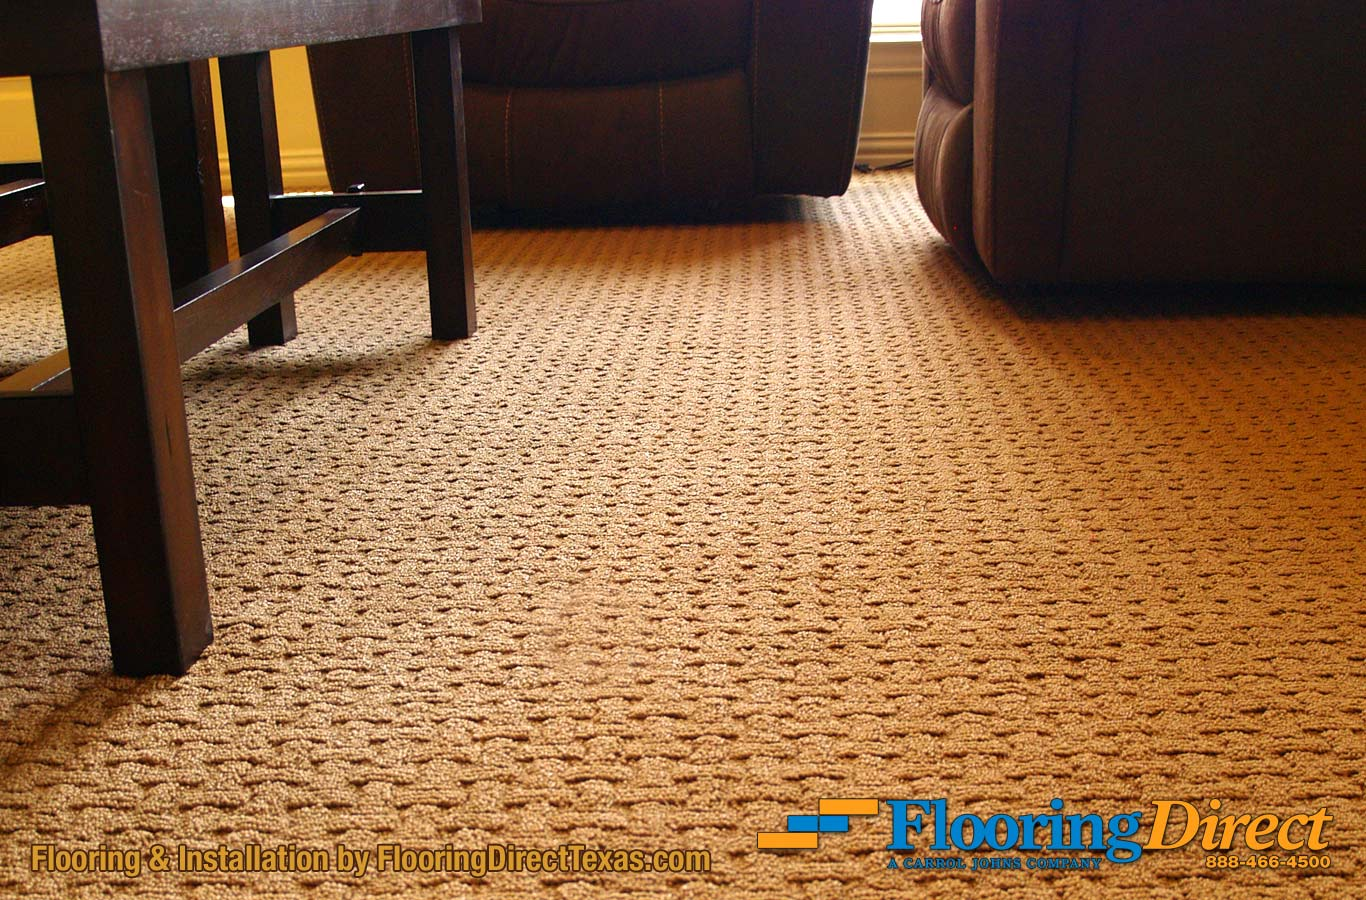 Residential carpet flooring in frisco tx flooring direct for Residential flooring